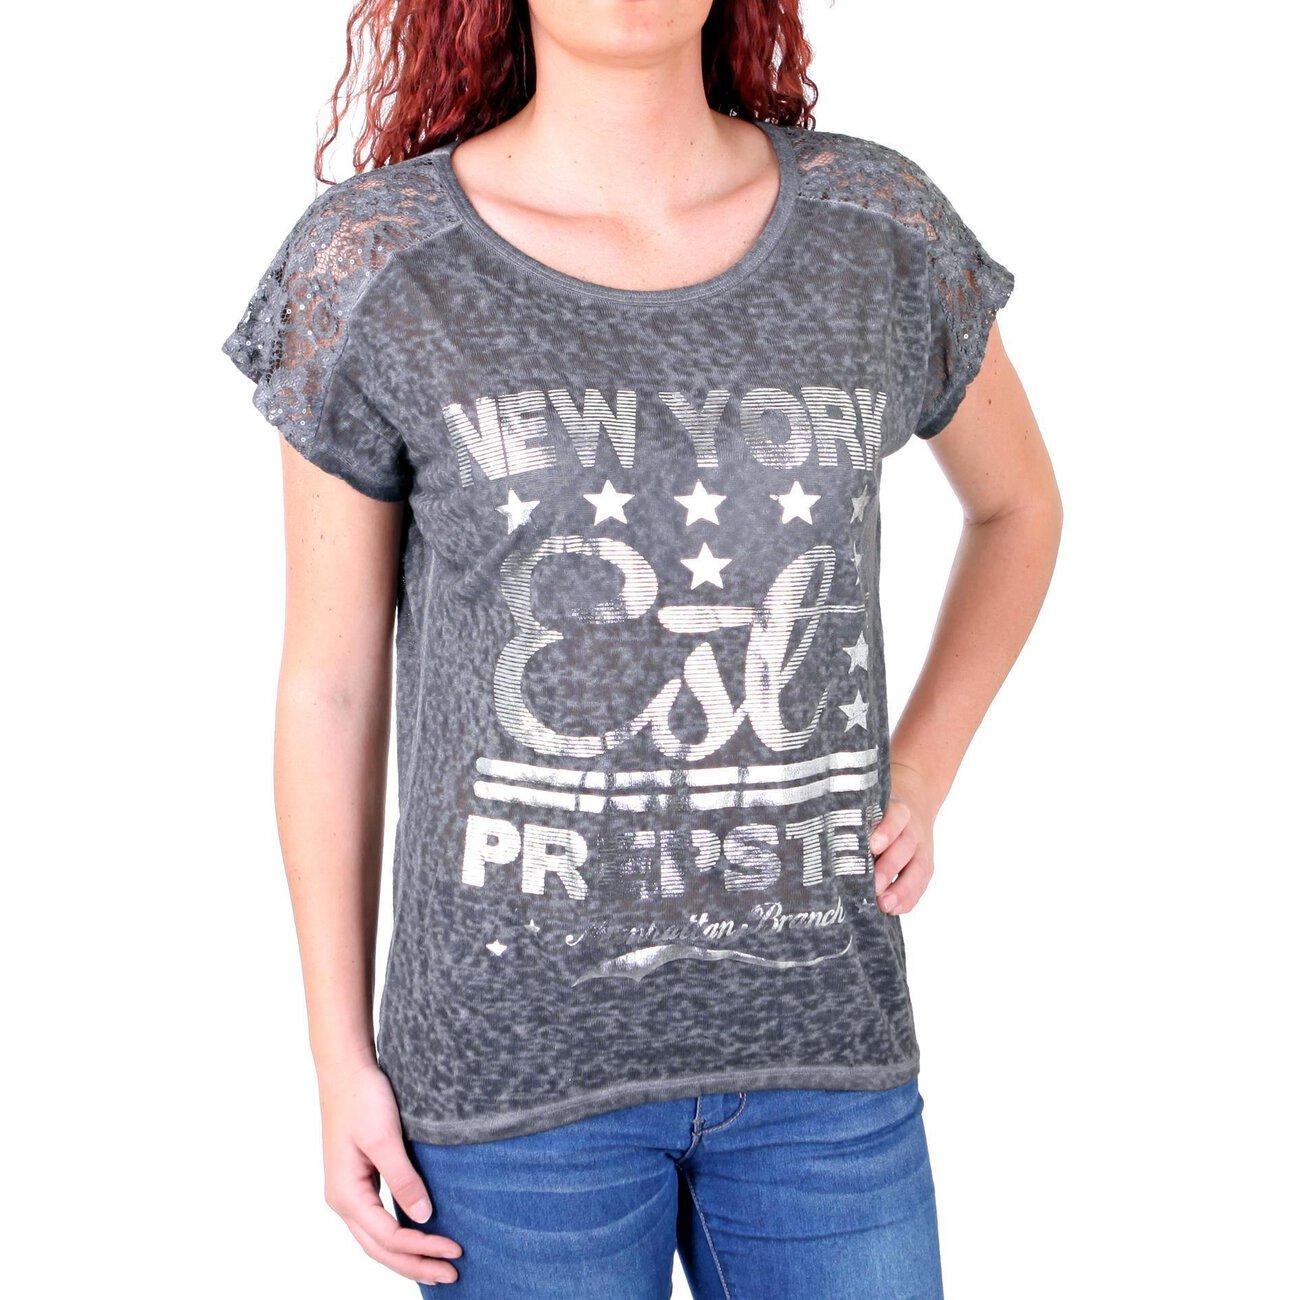 Madonna t shirt damen new york print madonna fashion for New york printed t shirts